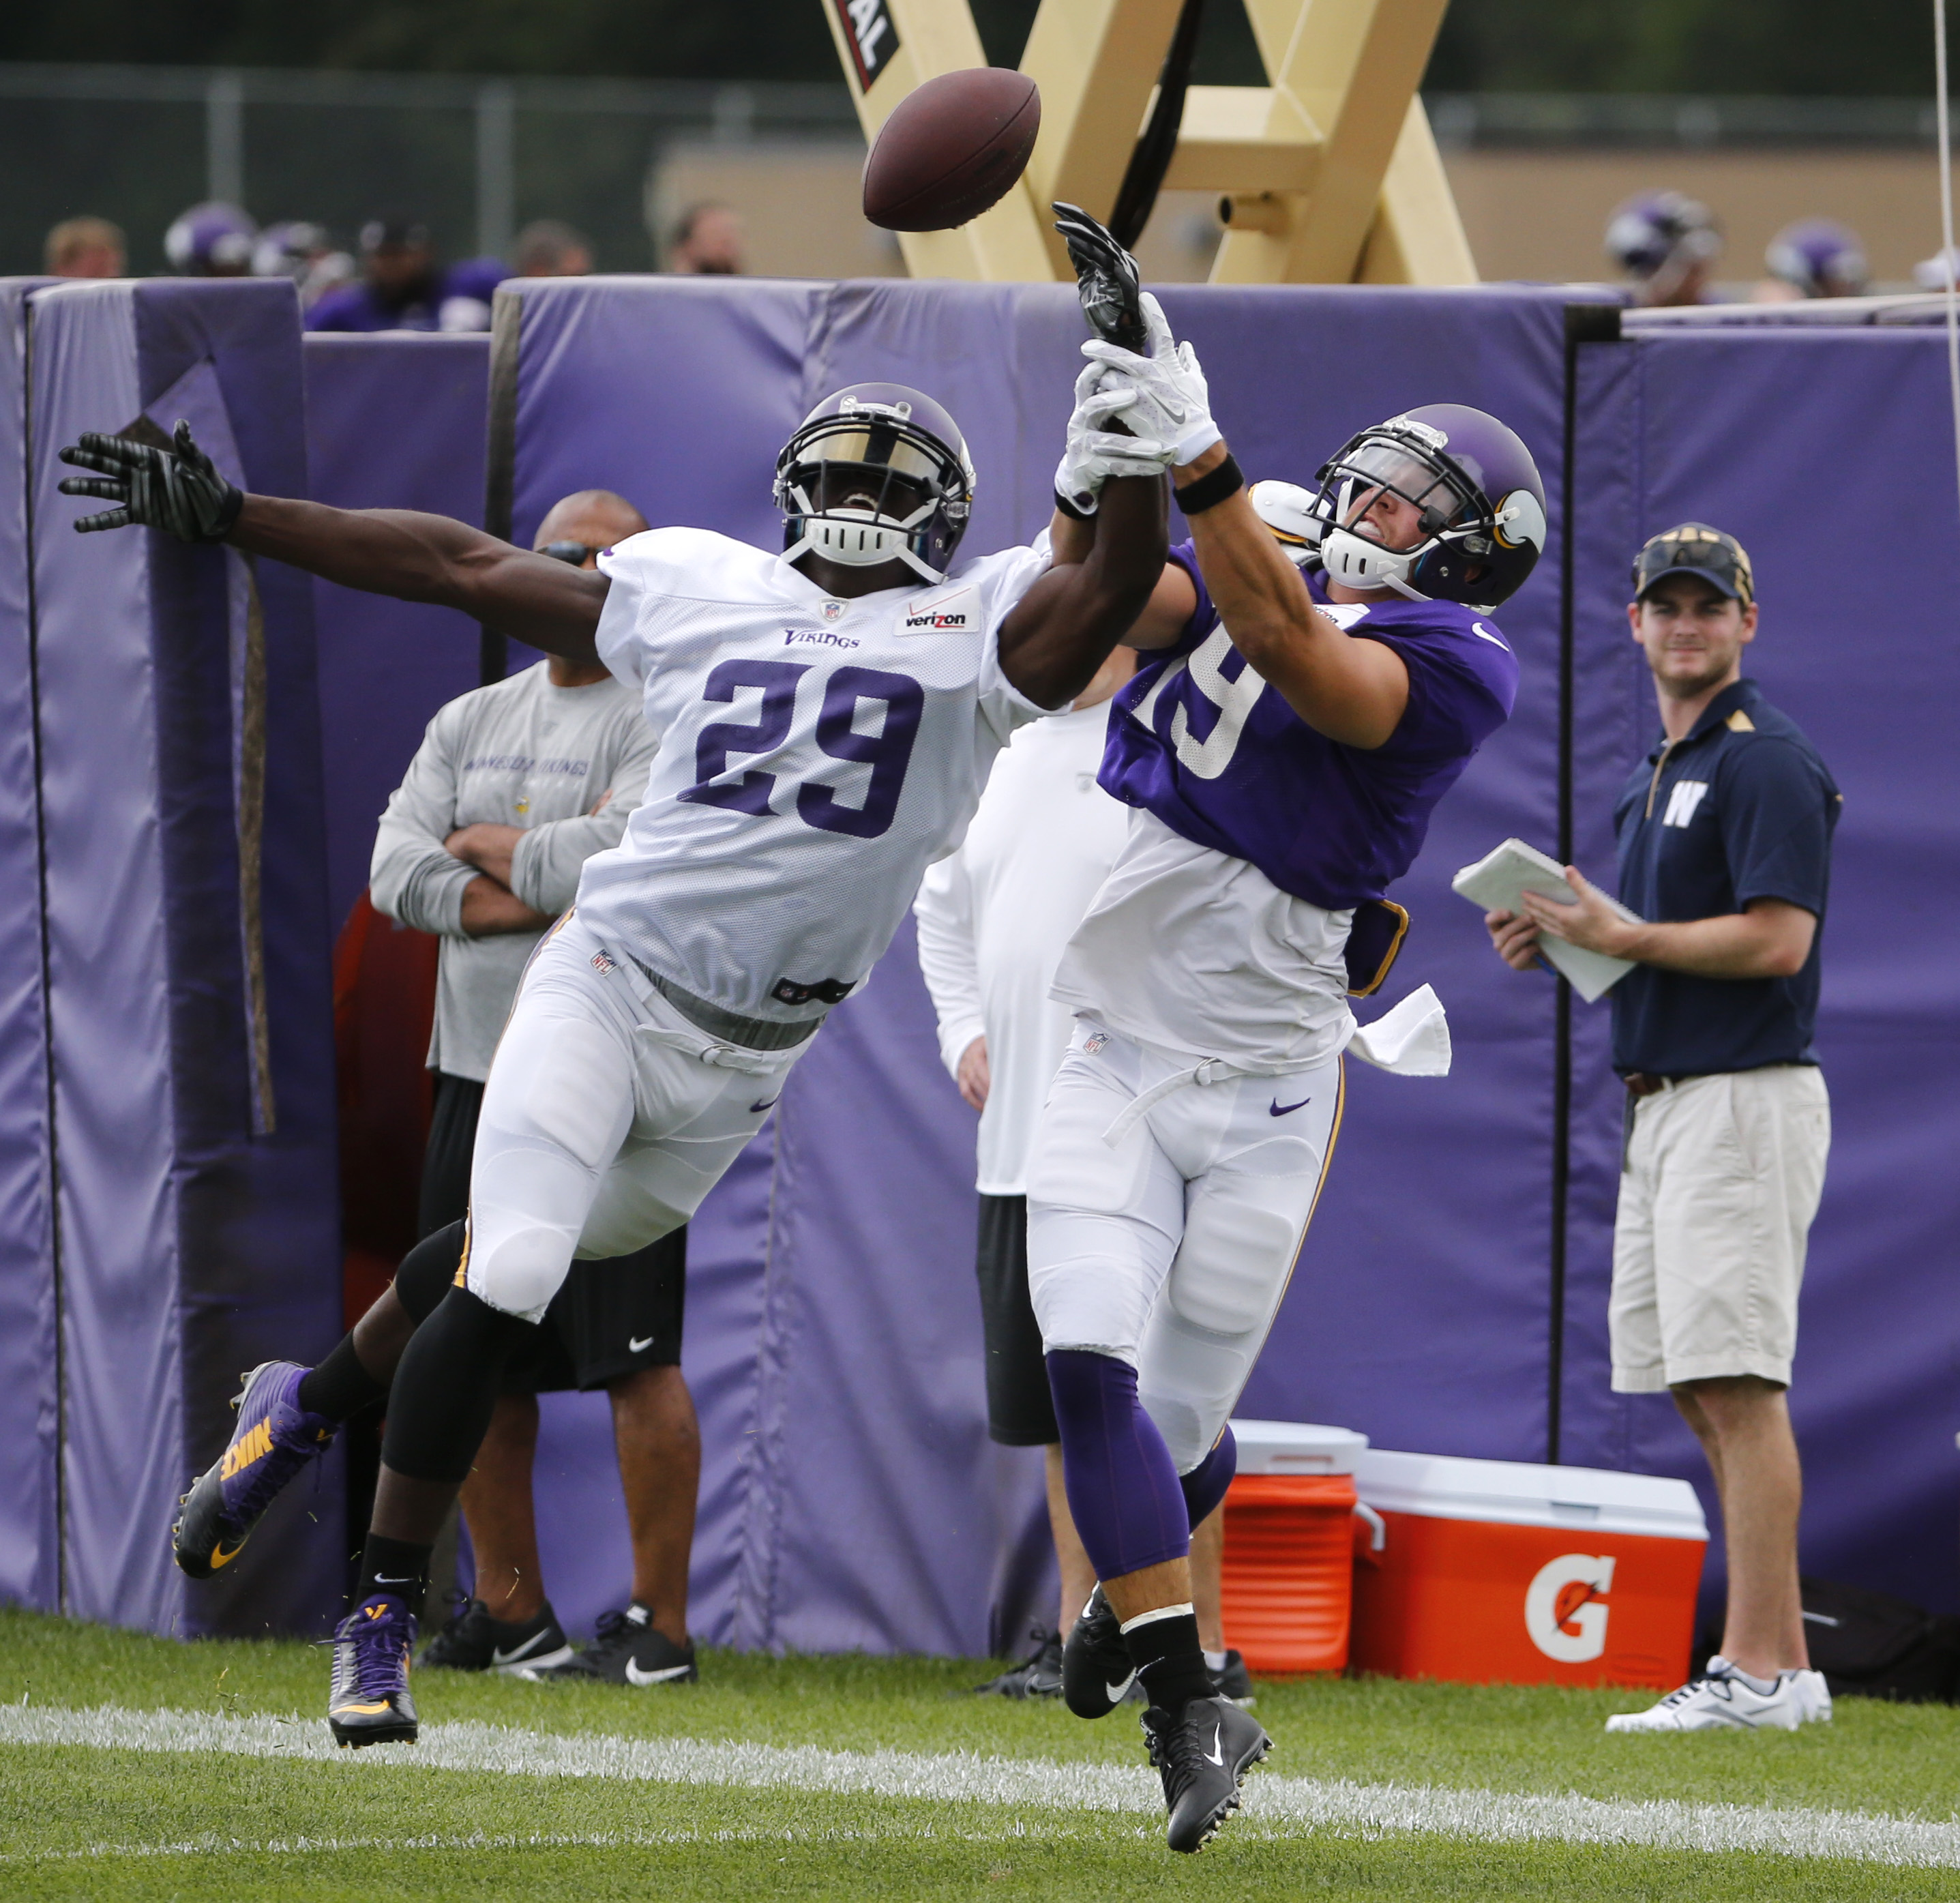 Minnesota Vikings cornerback Xavier Rhodes (29) breaks up a pass intended for wide receiver Adam Thielen during the first practice in full pads at an NFL football training camp on the campus of Minnesota State University Tuesday, July 28, 2015, in Mankato